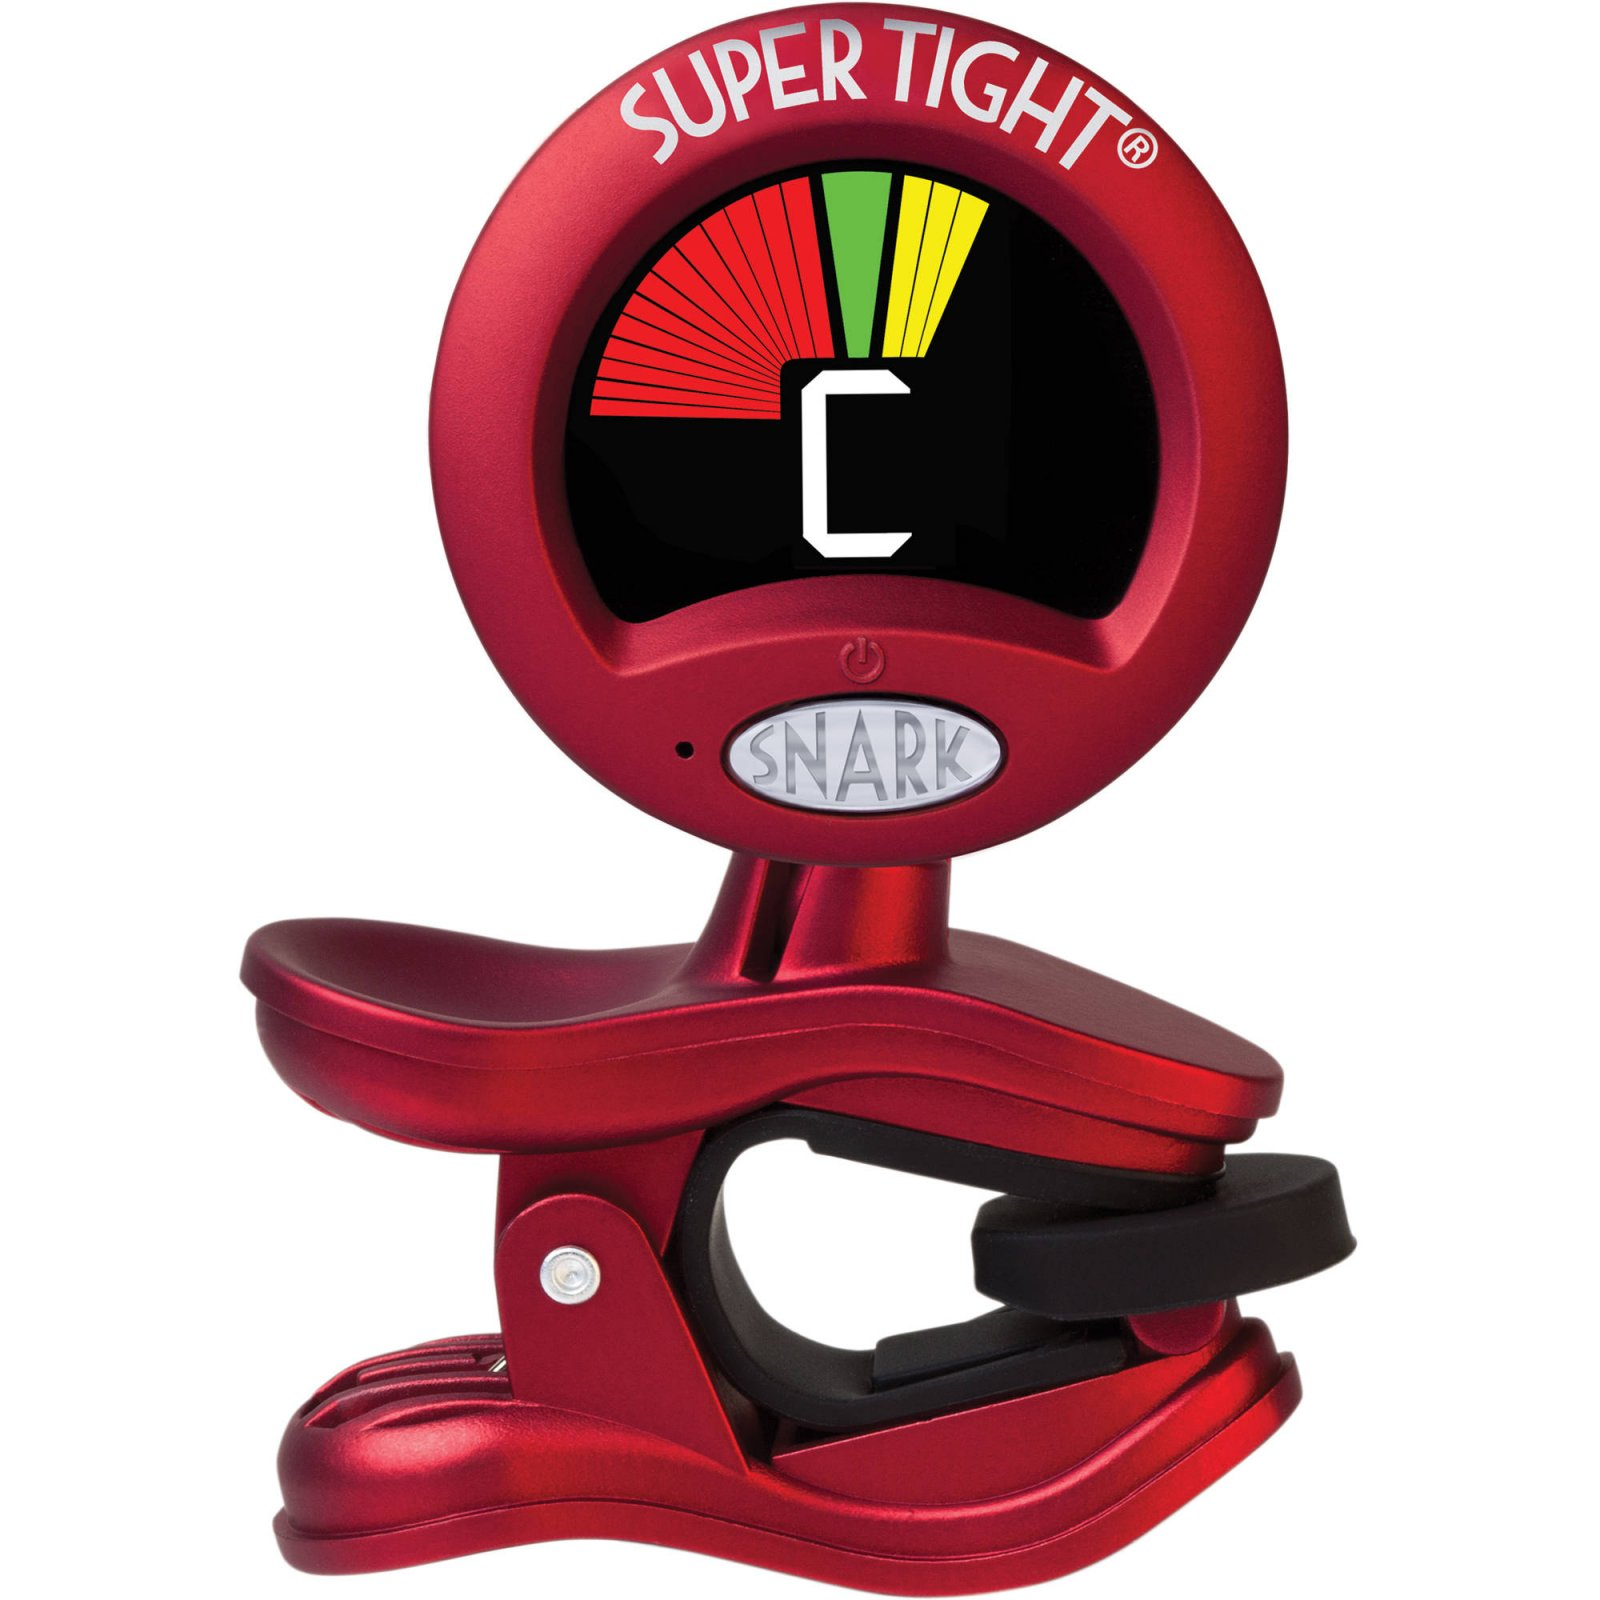 Snark Super Tight Chromatic Instrument Tuner - Red